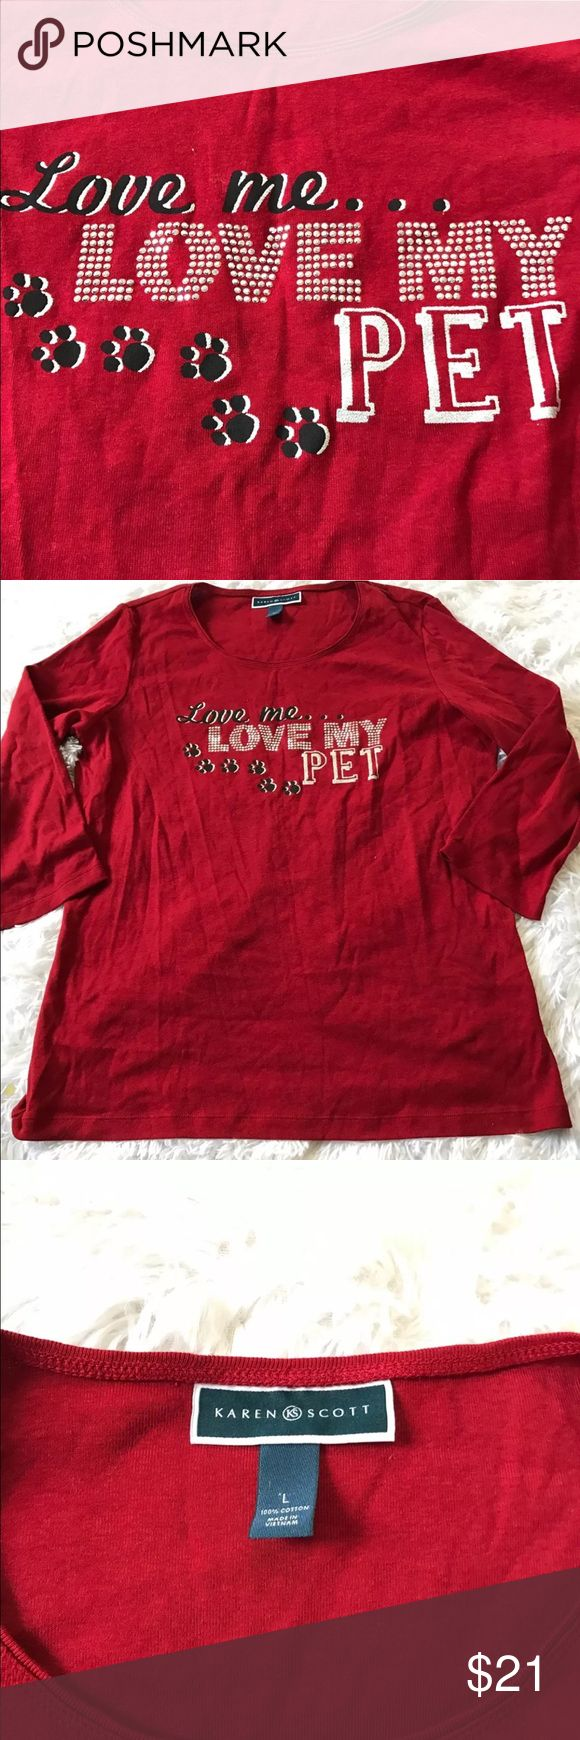 "Large red women's Tee dog animal lovers Karen Scott  Women's large  Red  100% cotton  3/4 sleeves  ""Love me love my pet""  Embellished  Measurements laying flat:  Armpit to armpit: 21.5""  Length from armpit: 17.5"" Karen Scott Tops Blouses"